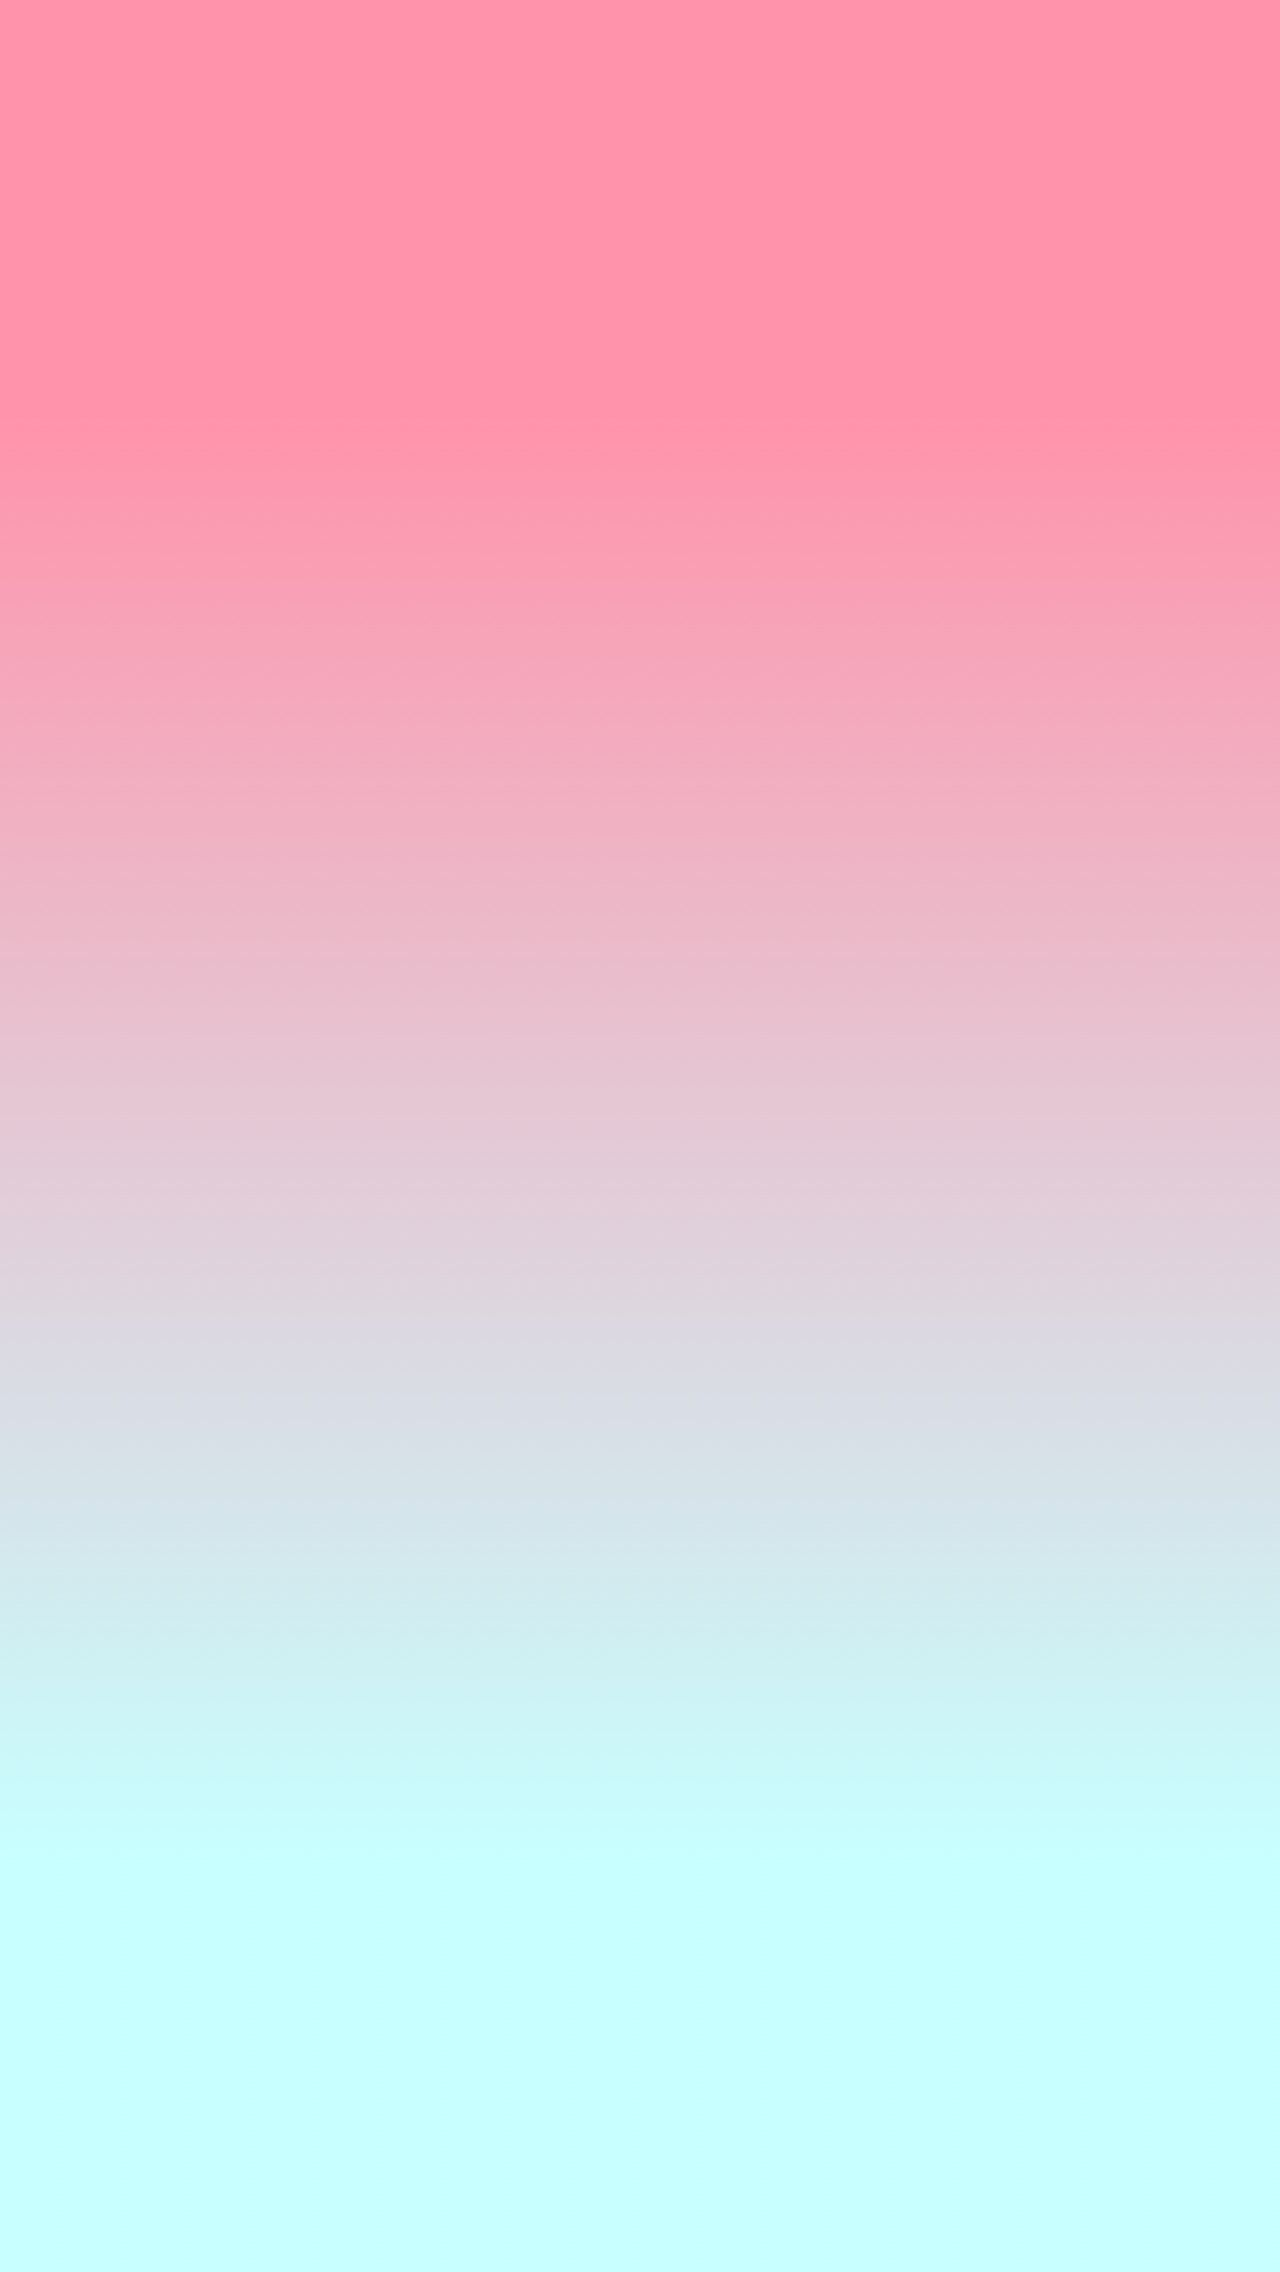 Pink and blue ombre iphone wallpaper | Iphone wallpapers ...